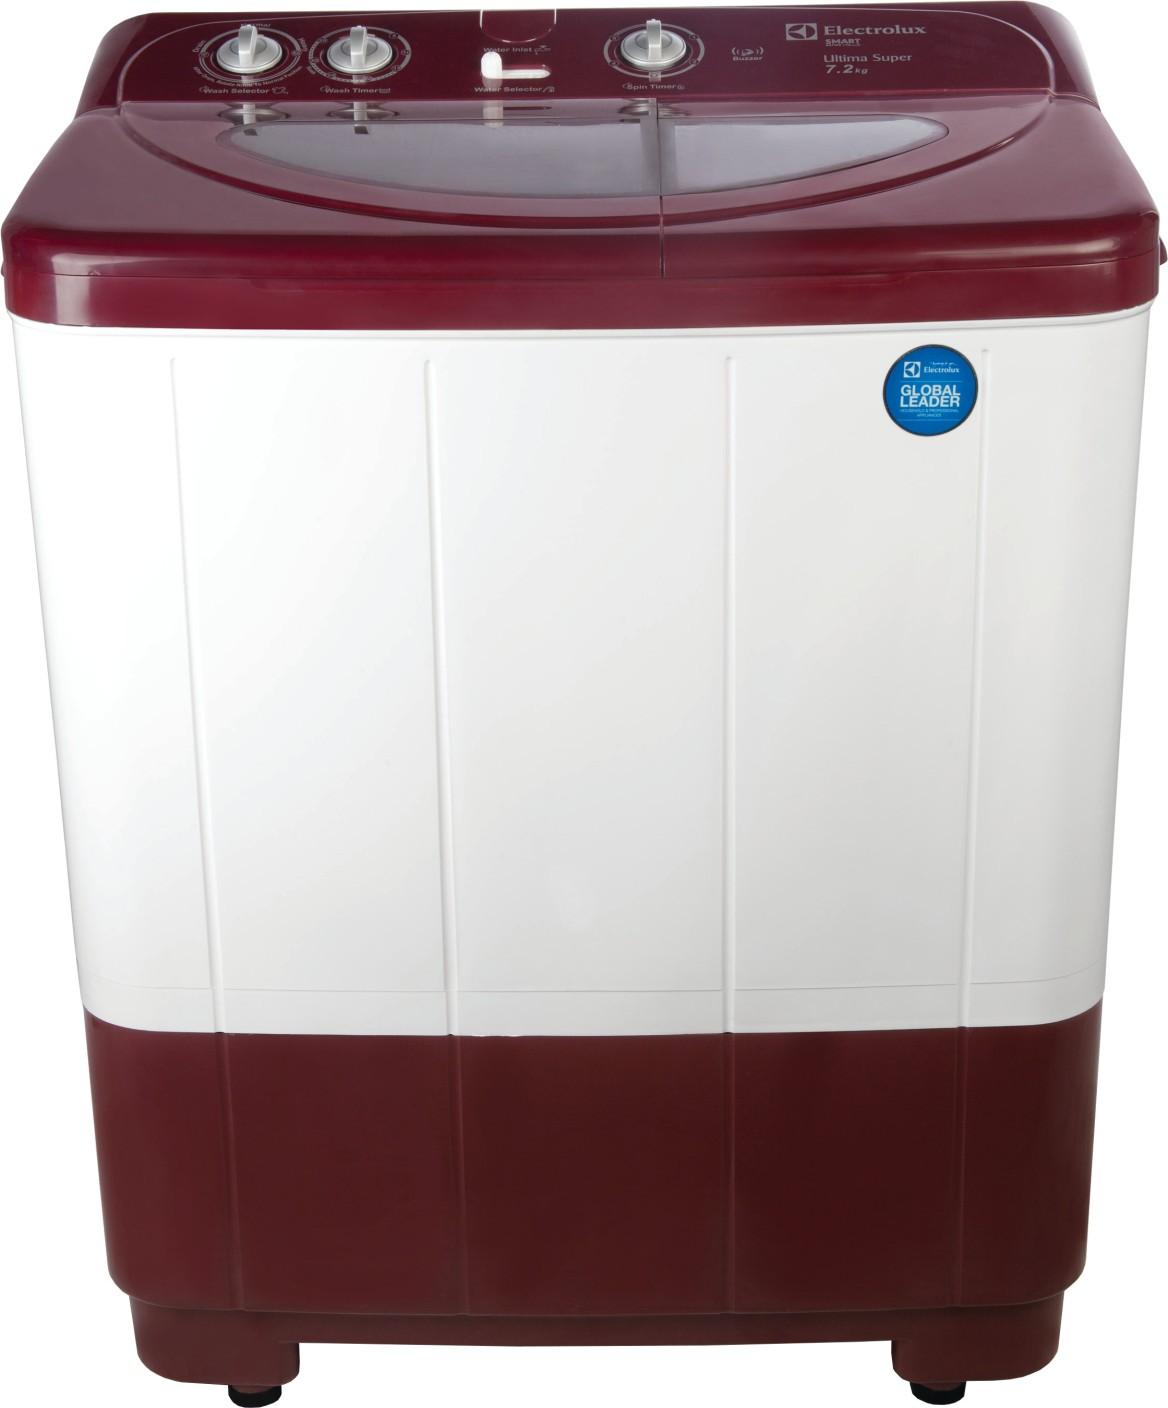 Electrolux 7.2 kg Semi Automatic Top Load Washing Machine ...